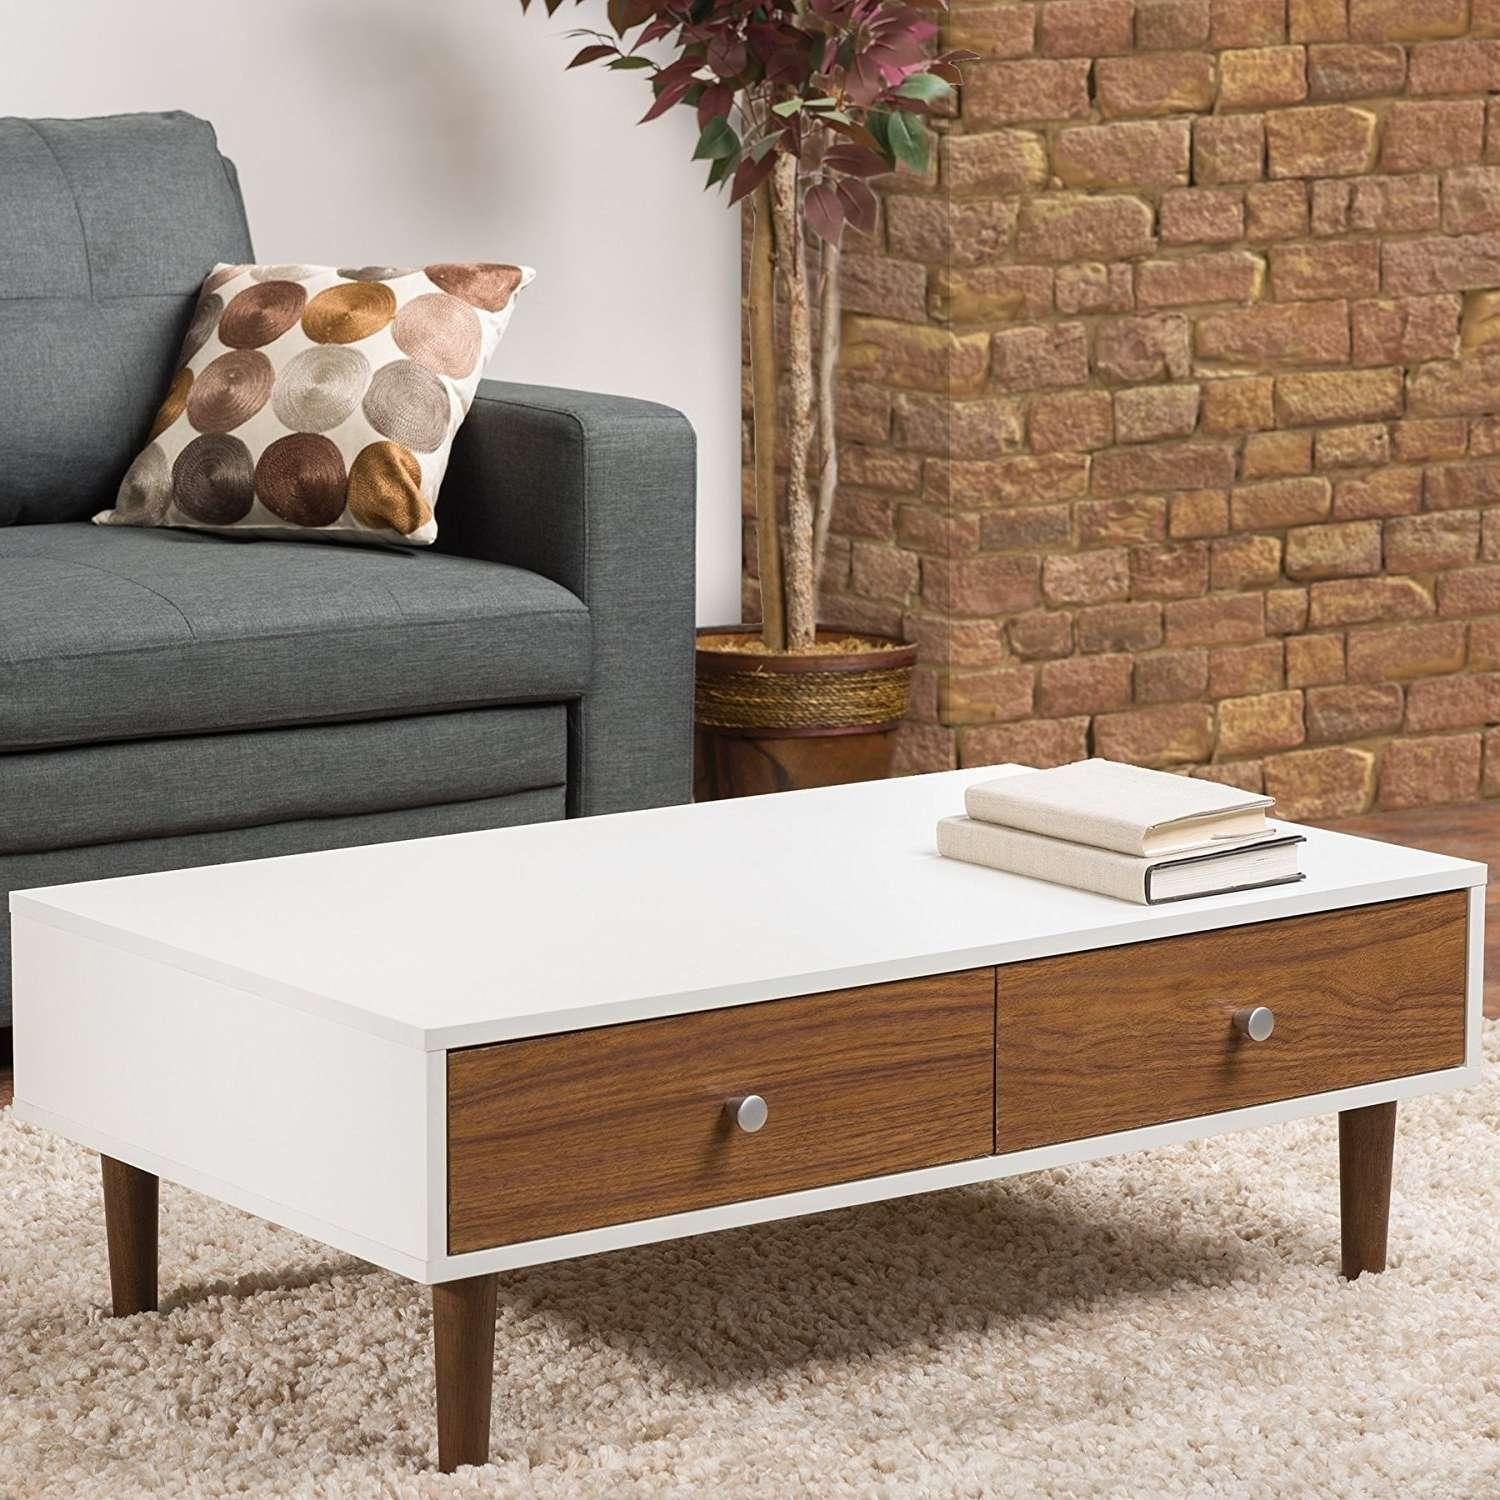 Coffee Table Amazing Coffee Table With Storage Small Coffee Inside In Fashionable Cheap Coffee Tables With Storage (View 5 of 20)